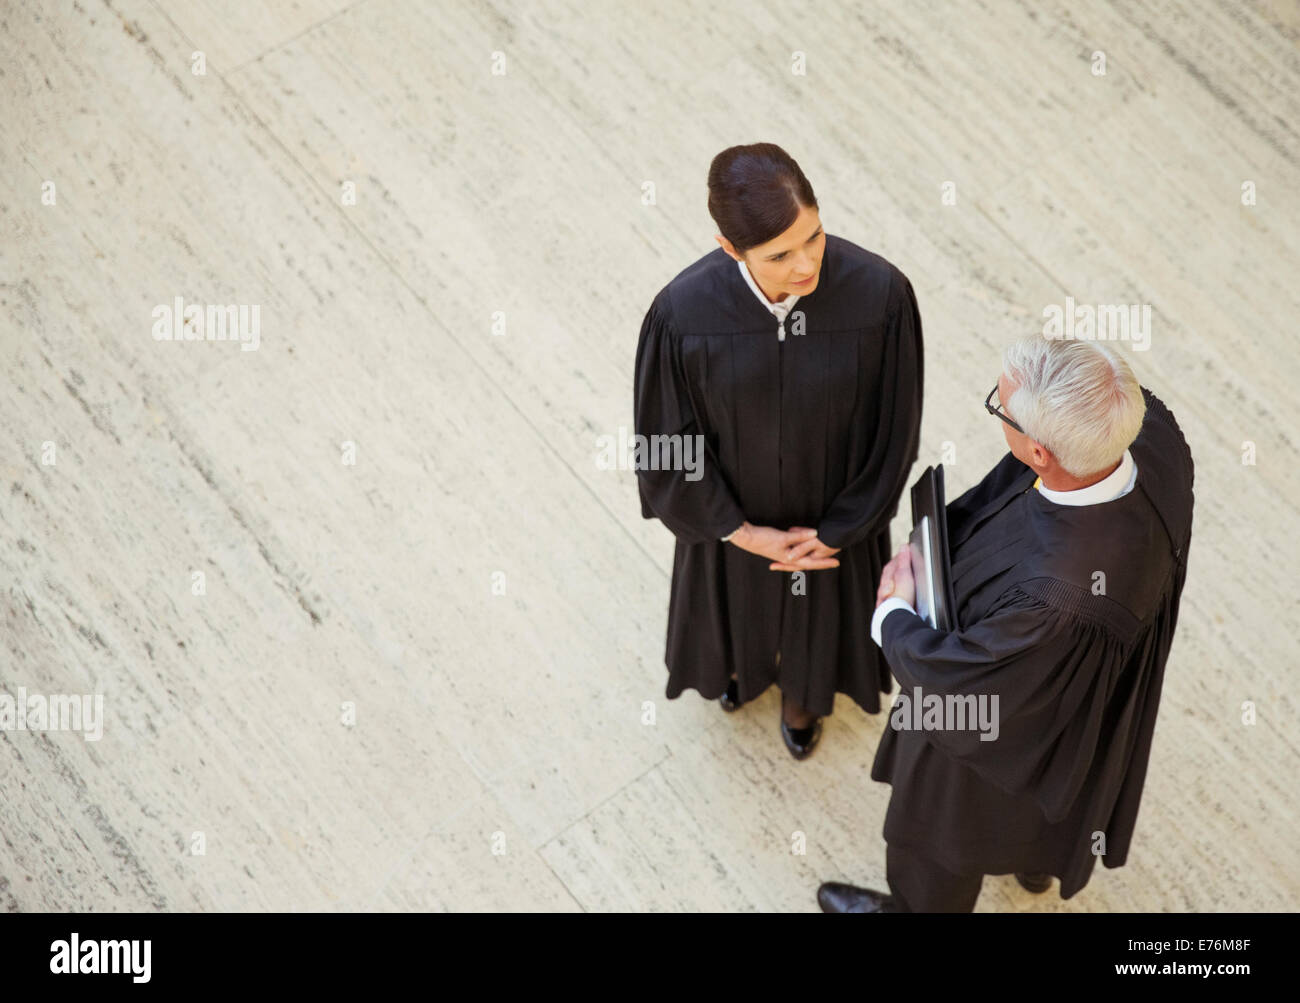 Judges talking in courthouse - Stock Image